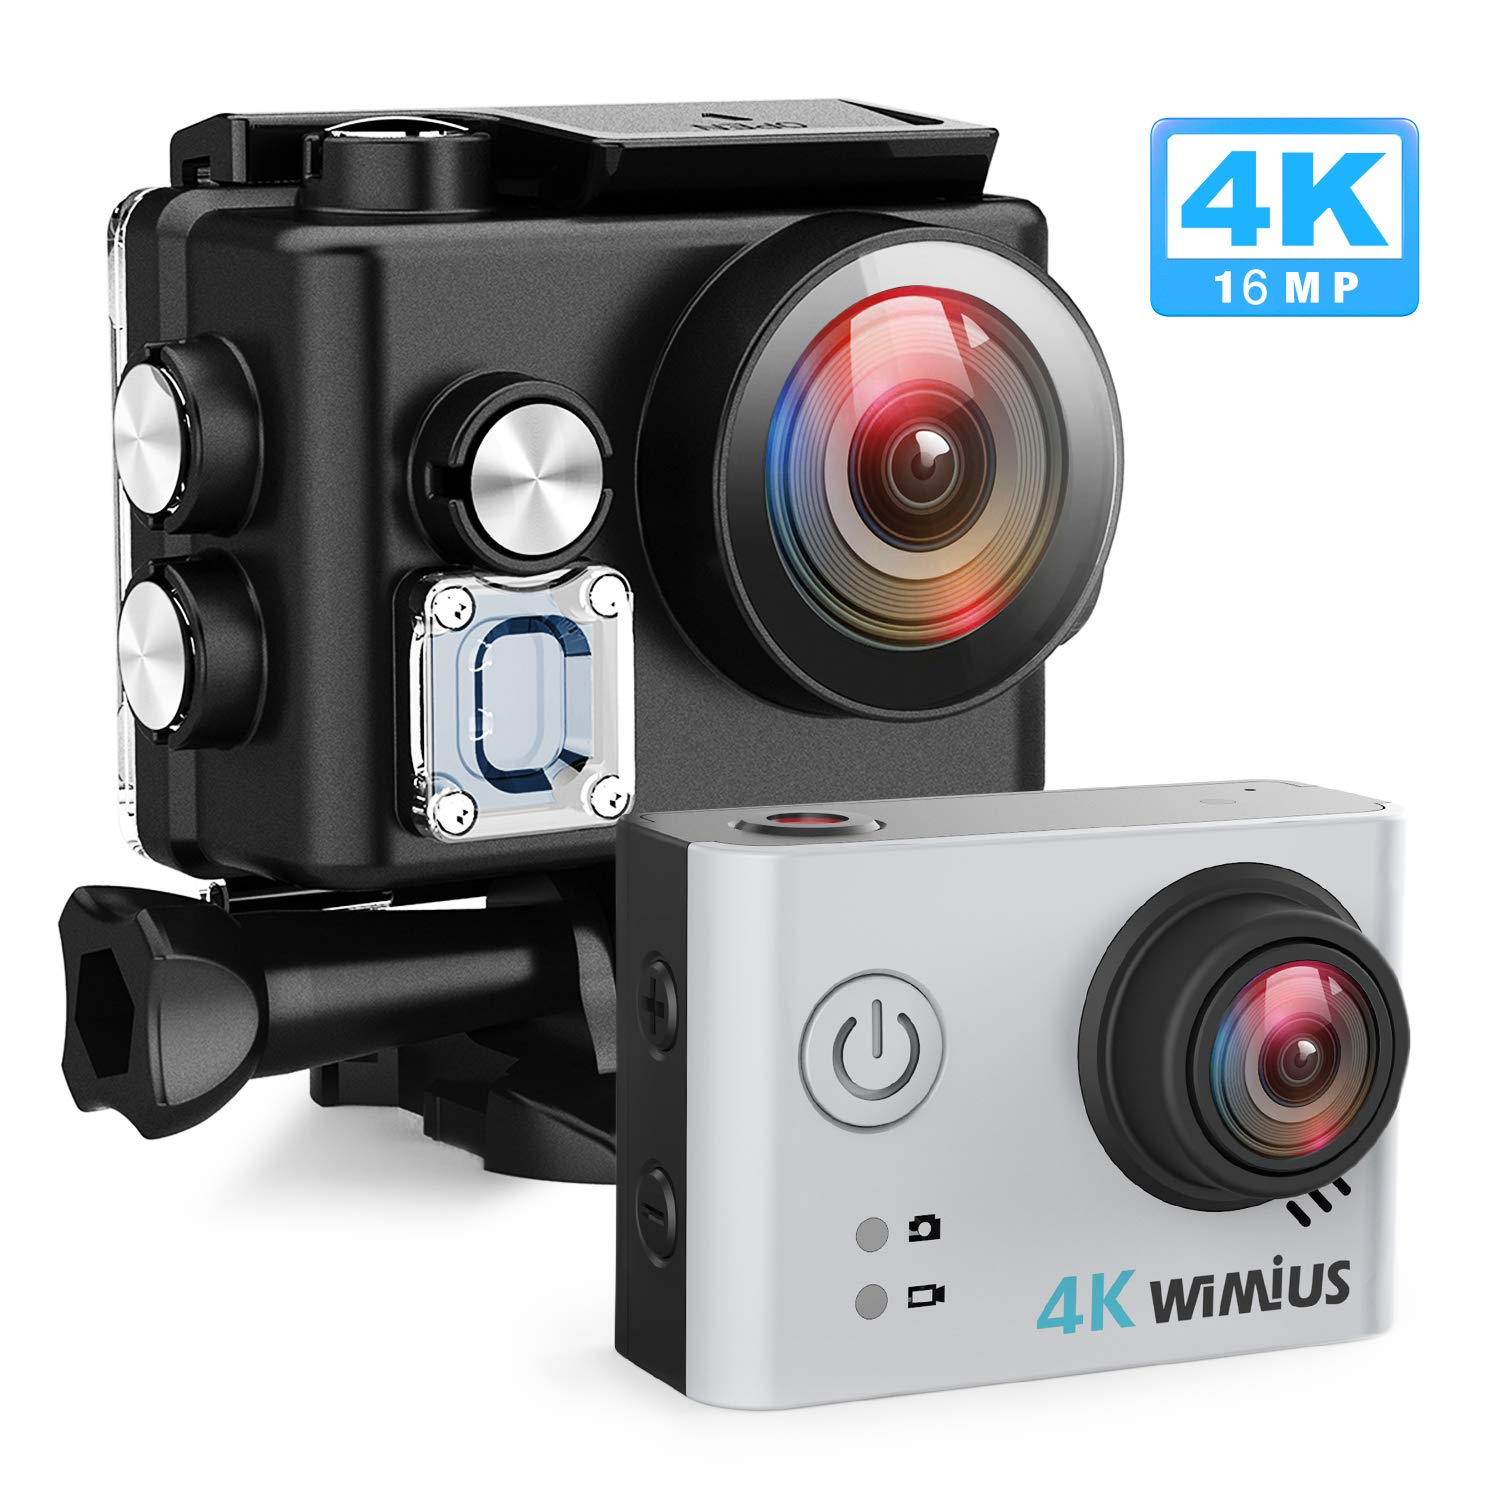 WiMiUS Sports Action Camera 4K Ultra HD 16MP Underwater Waterproof Camera 170° Wide Angle WiFi Sports DV Helmet Cam 2 Batteries Mounting Accessories Kit(Silver)